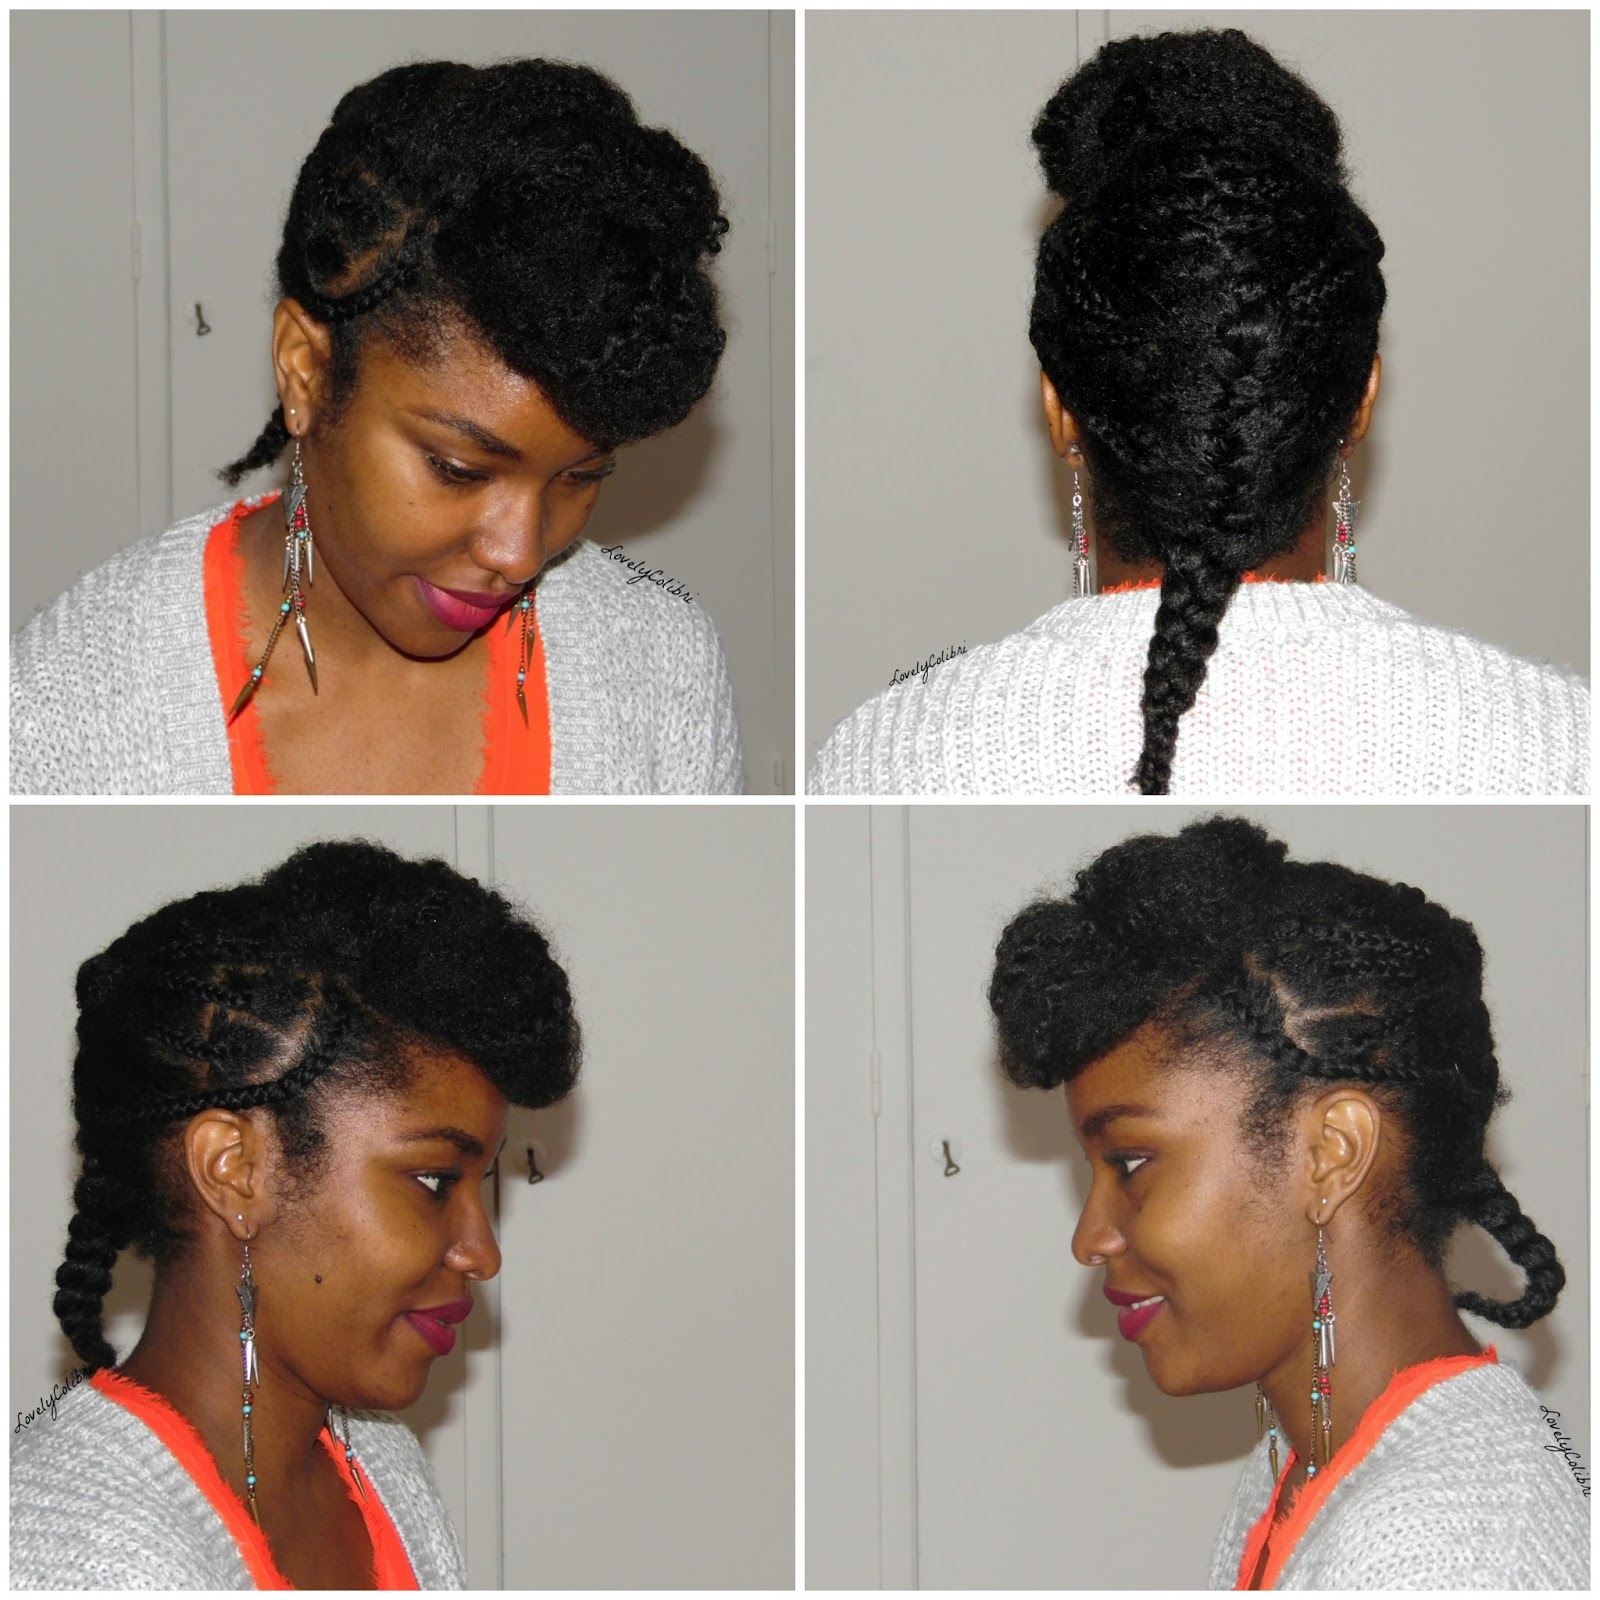 Grosses tresses africaine - Coiffure pour grosse ...